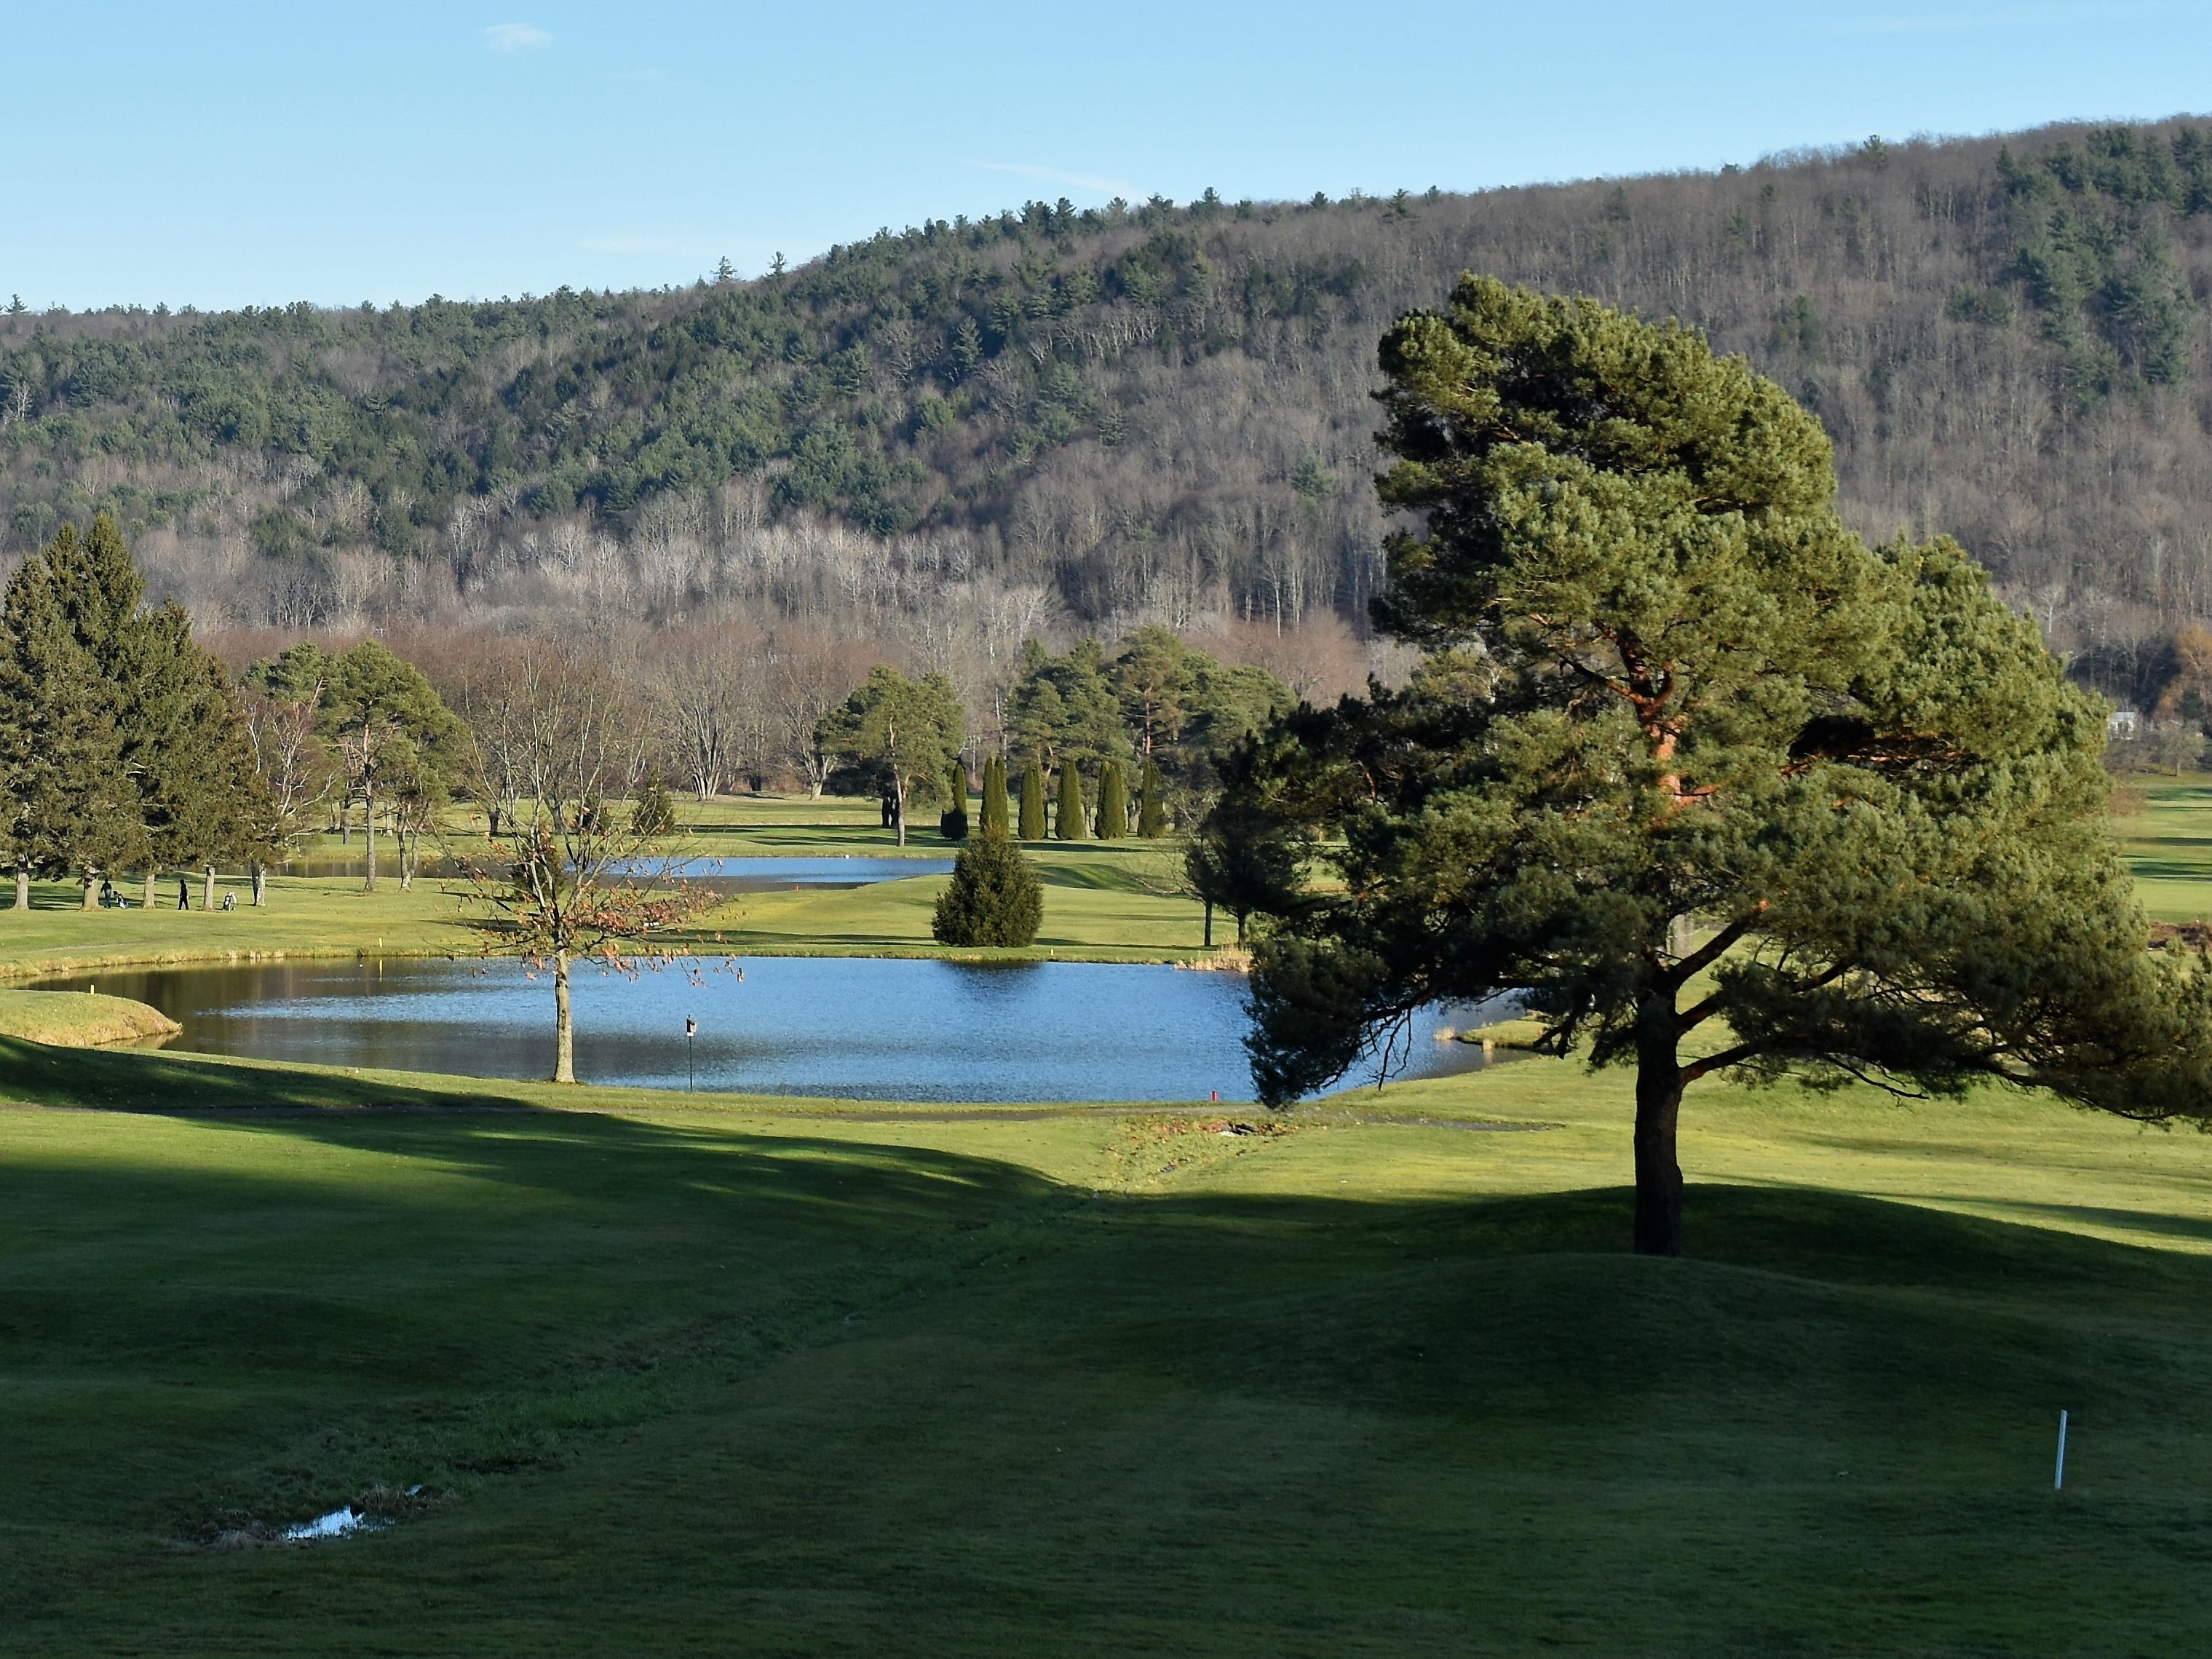 Genegantslet Golf Course